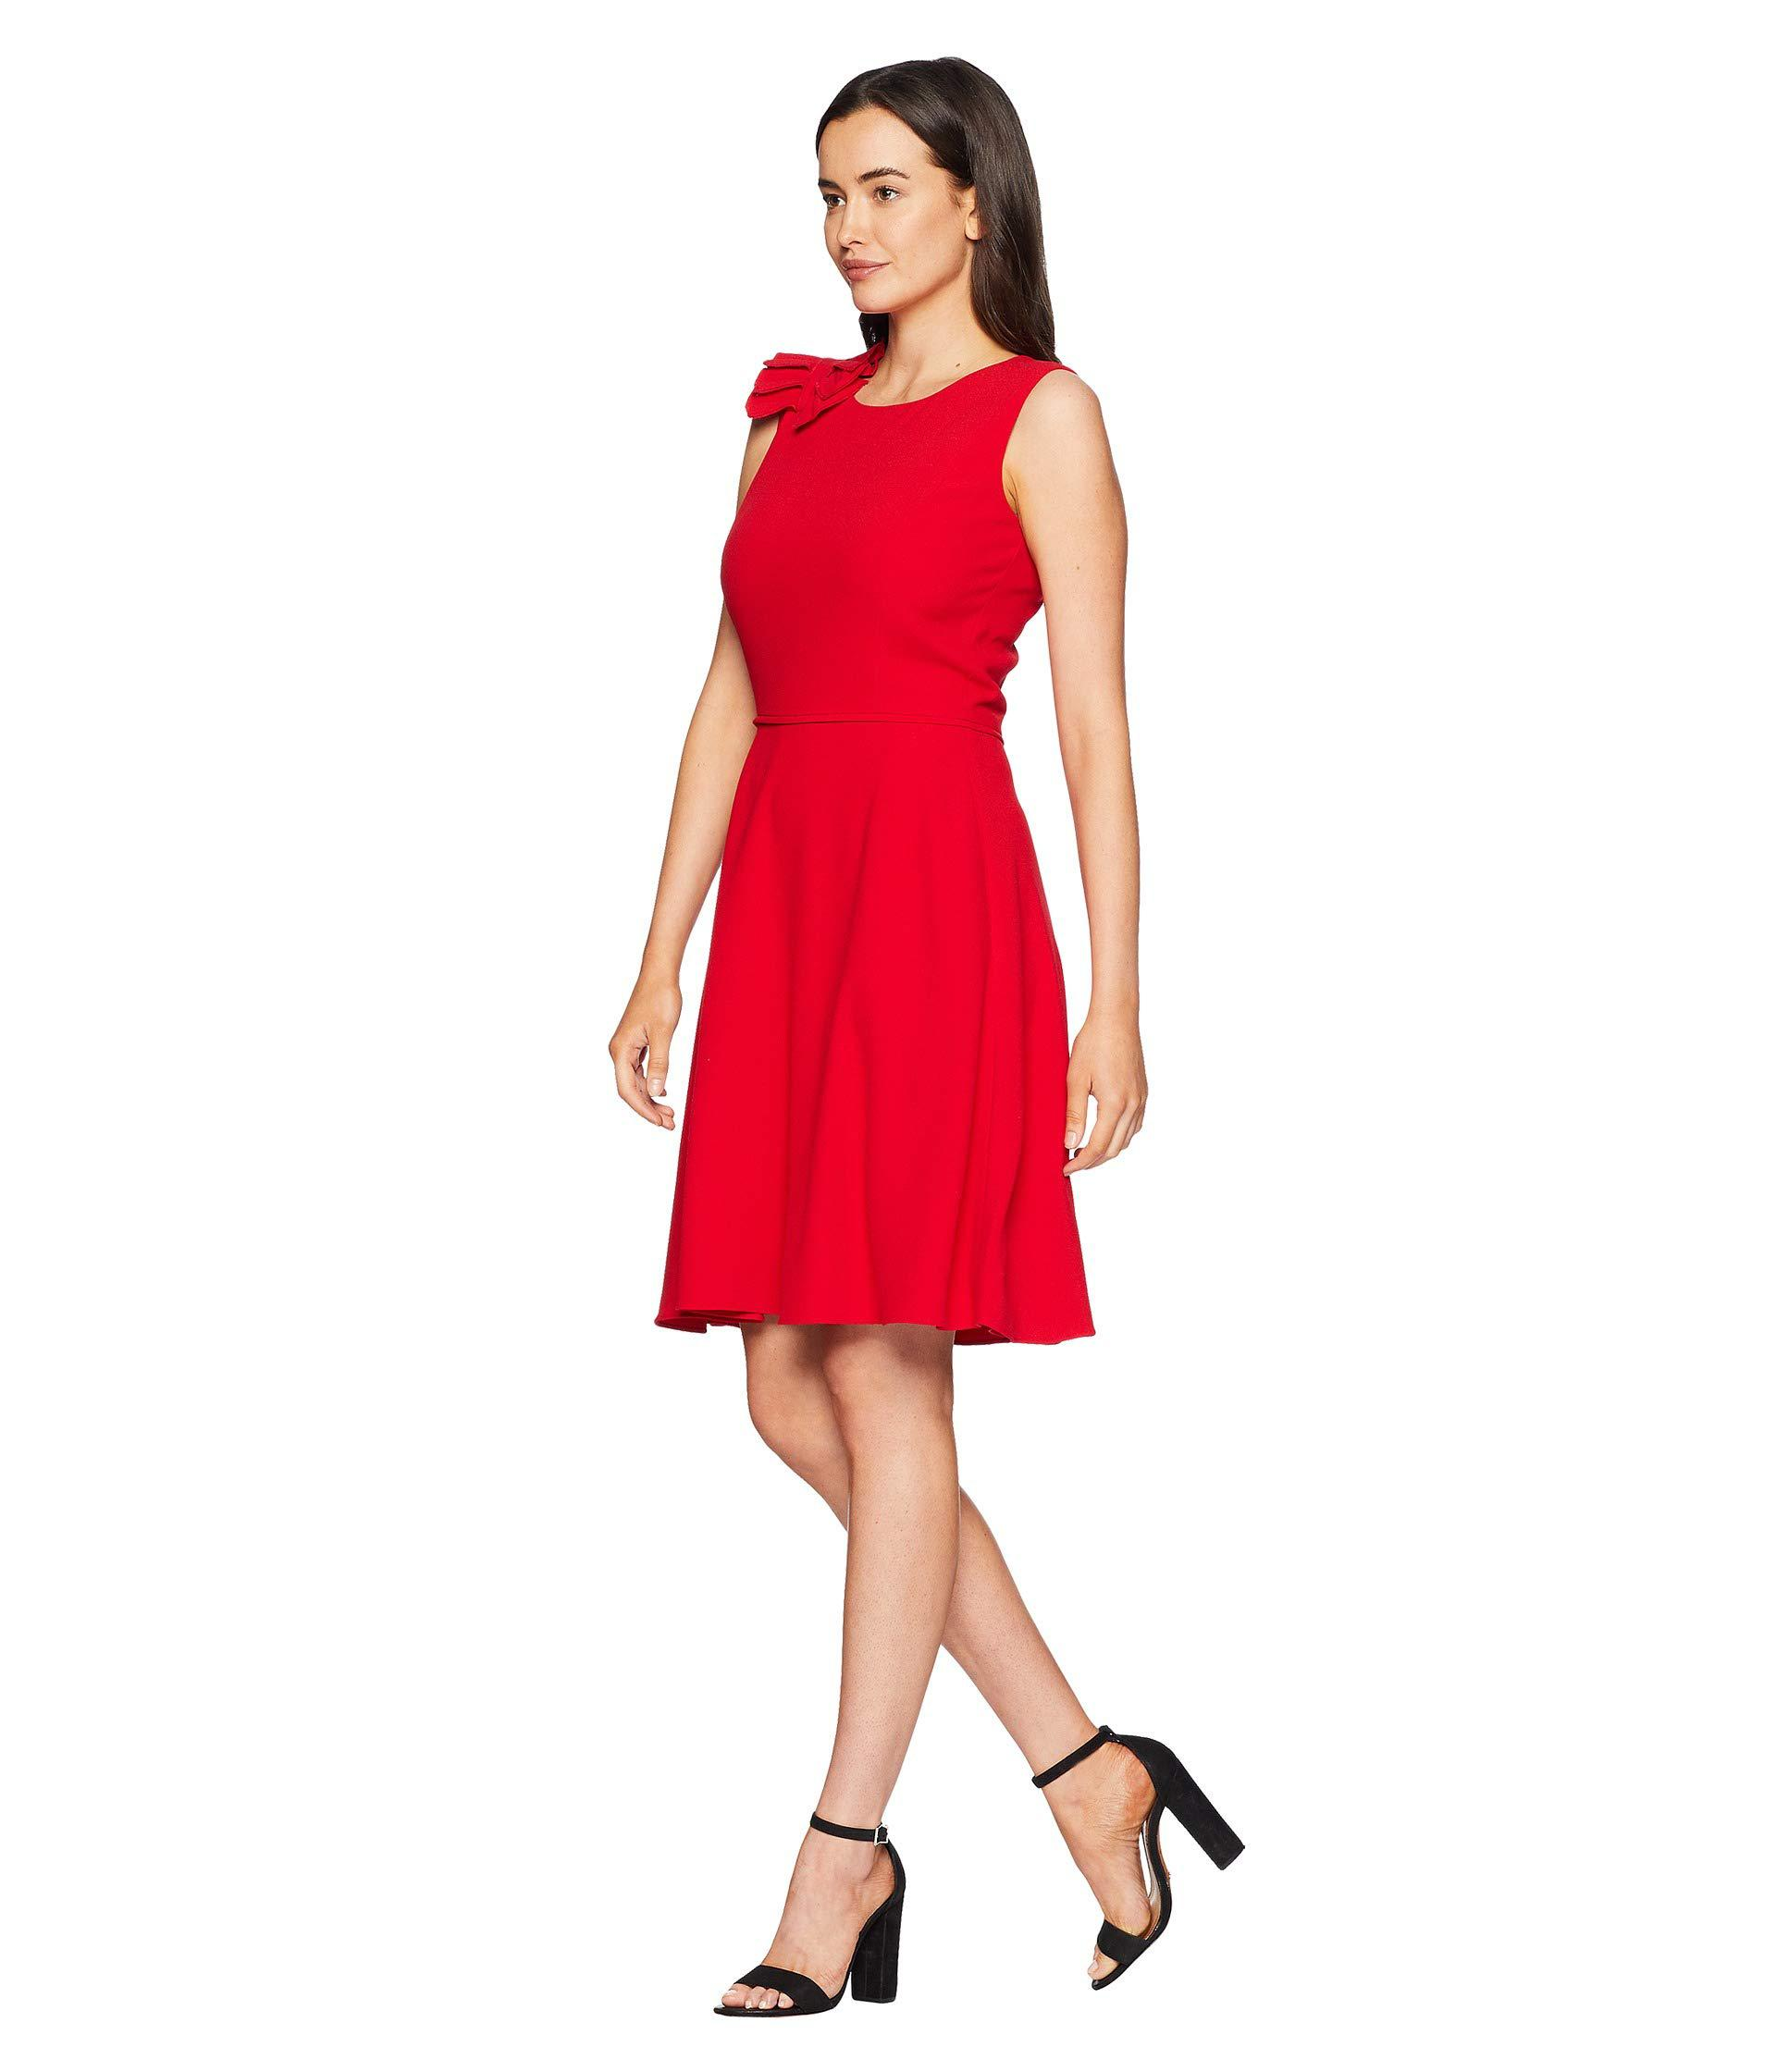 a02baa894a2c Lyst - Tahari Sleeveless Scoop Neck Fit & Flare Dress in Red